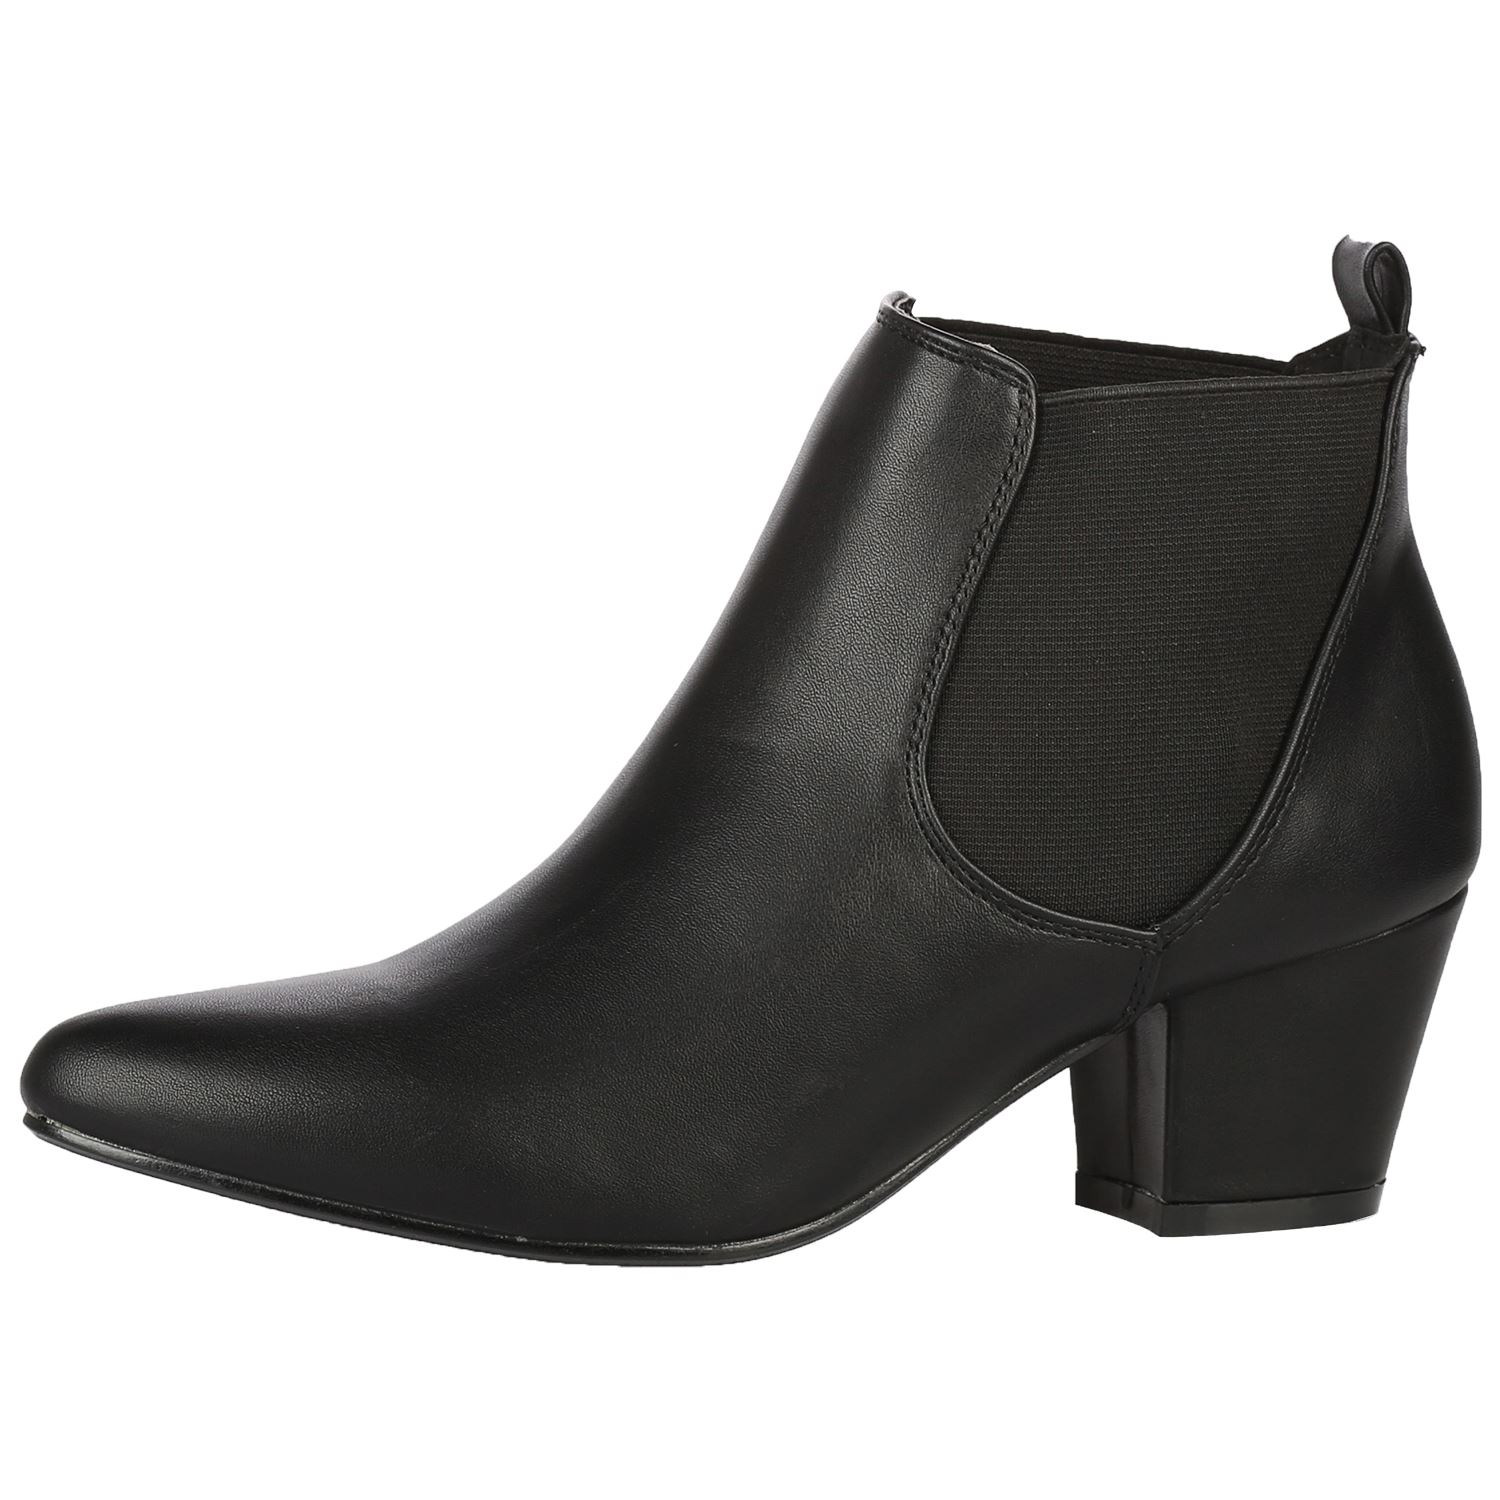 E Bay Second Hand Ladies Shoes